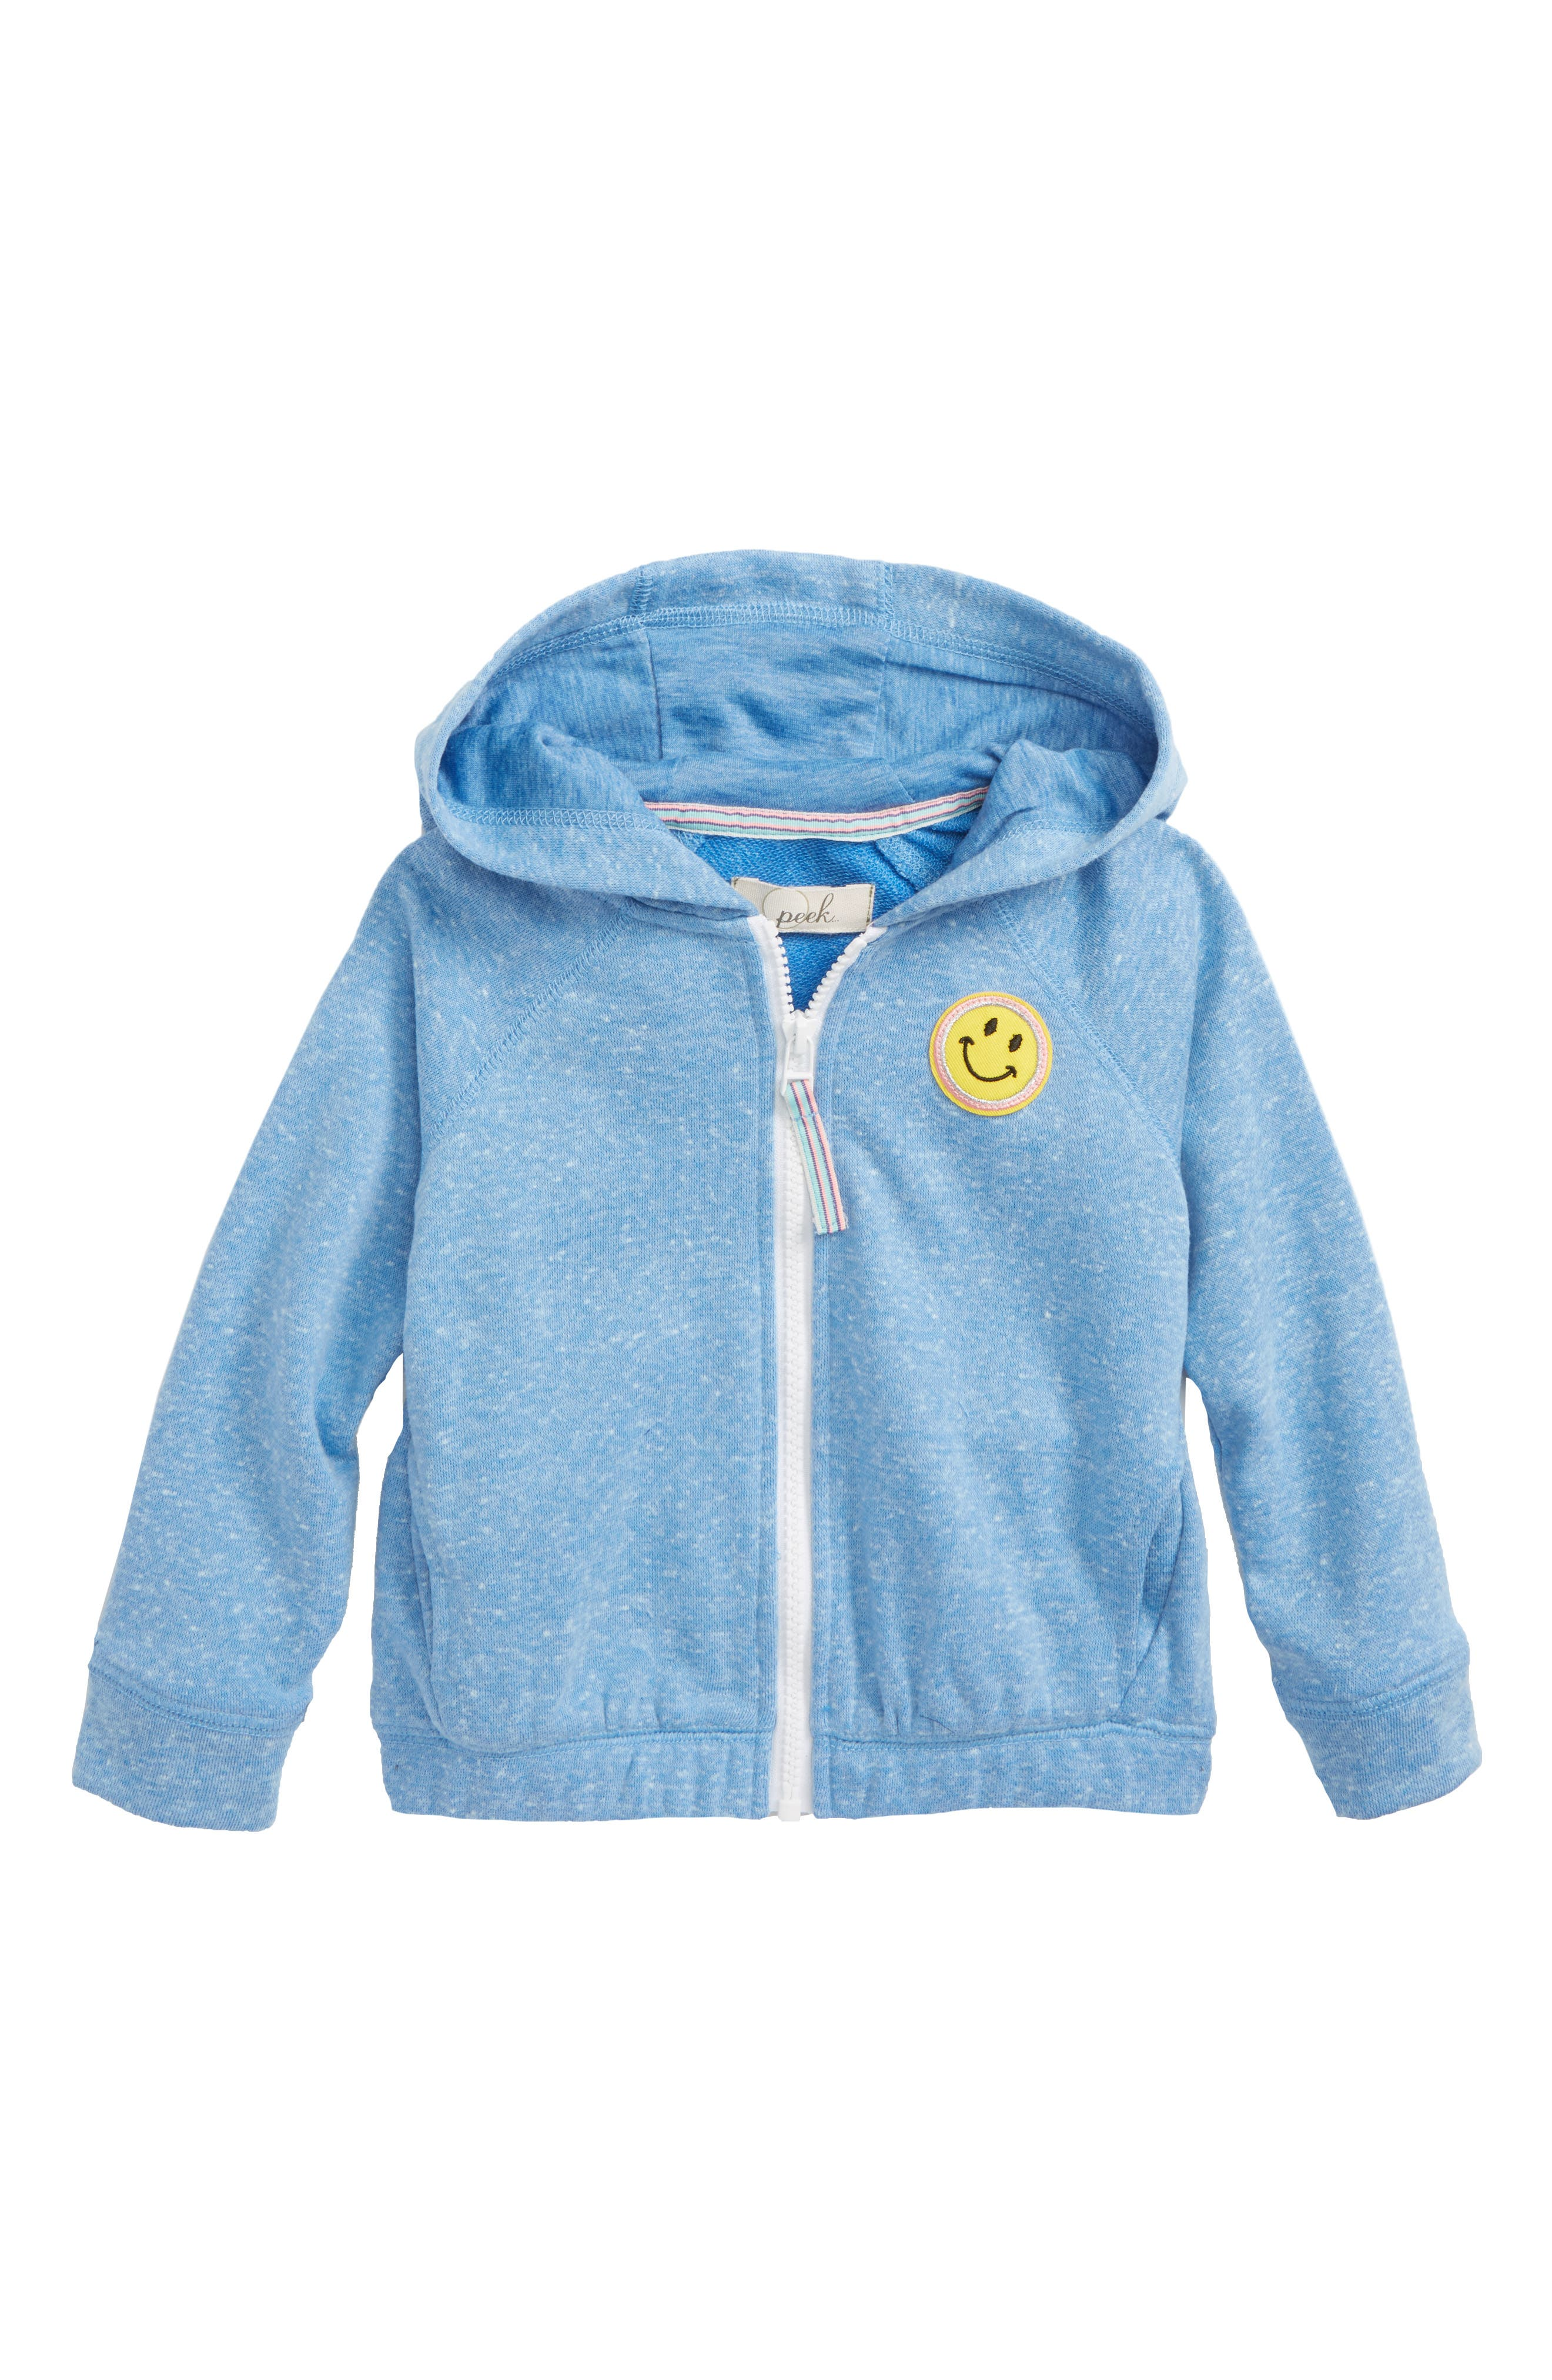 PS I Love You Full Zip Hoodie,                             Main thumbnail 1, color,                             Blue